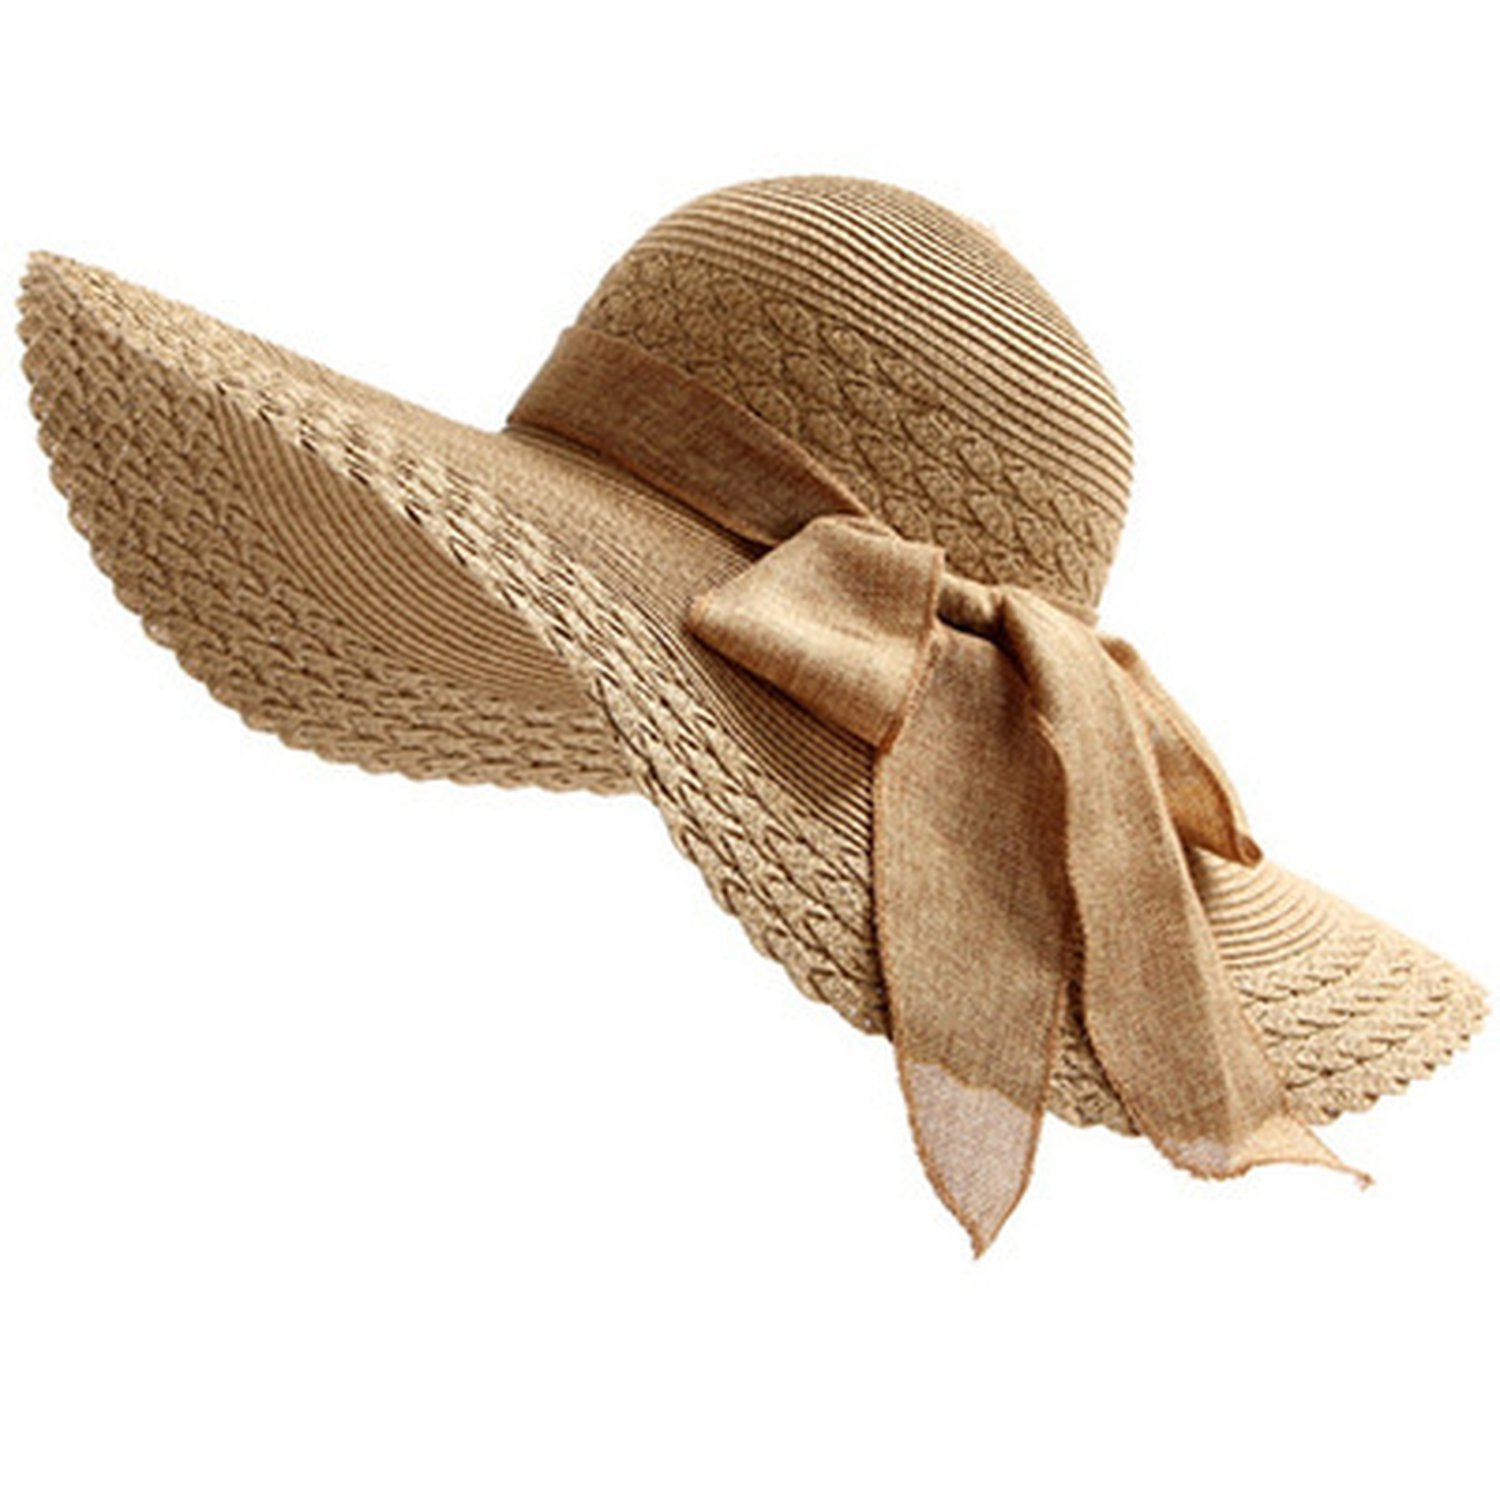 3ee7d2f02a9 Buy Romantic moments Women  39 s Beach Sun Hats 2018 Fashion Spring Summer  Uv Protection Classic Solid Color Casual Sun Hat in Cheap Price on  m.alibaba.com